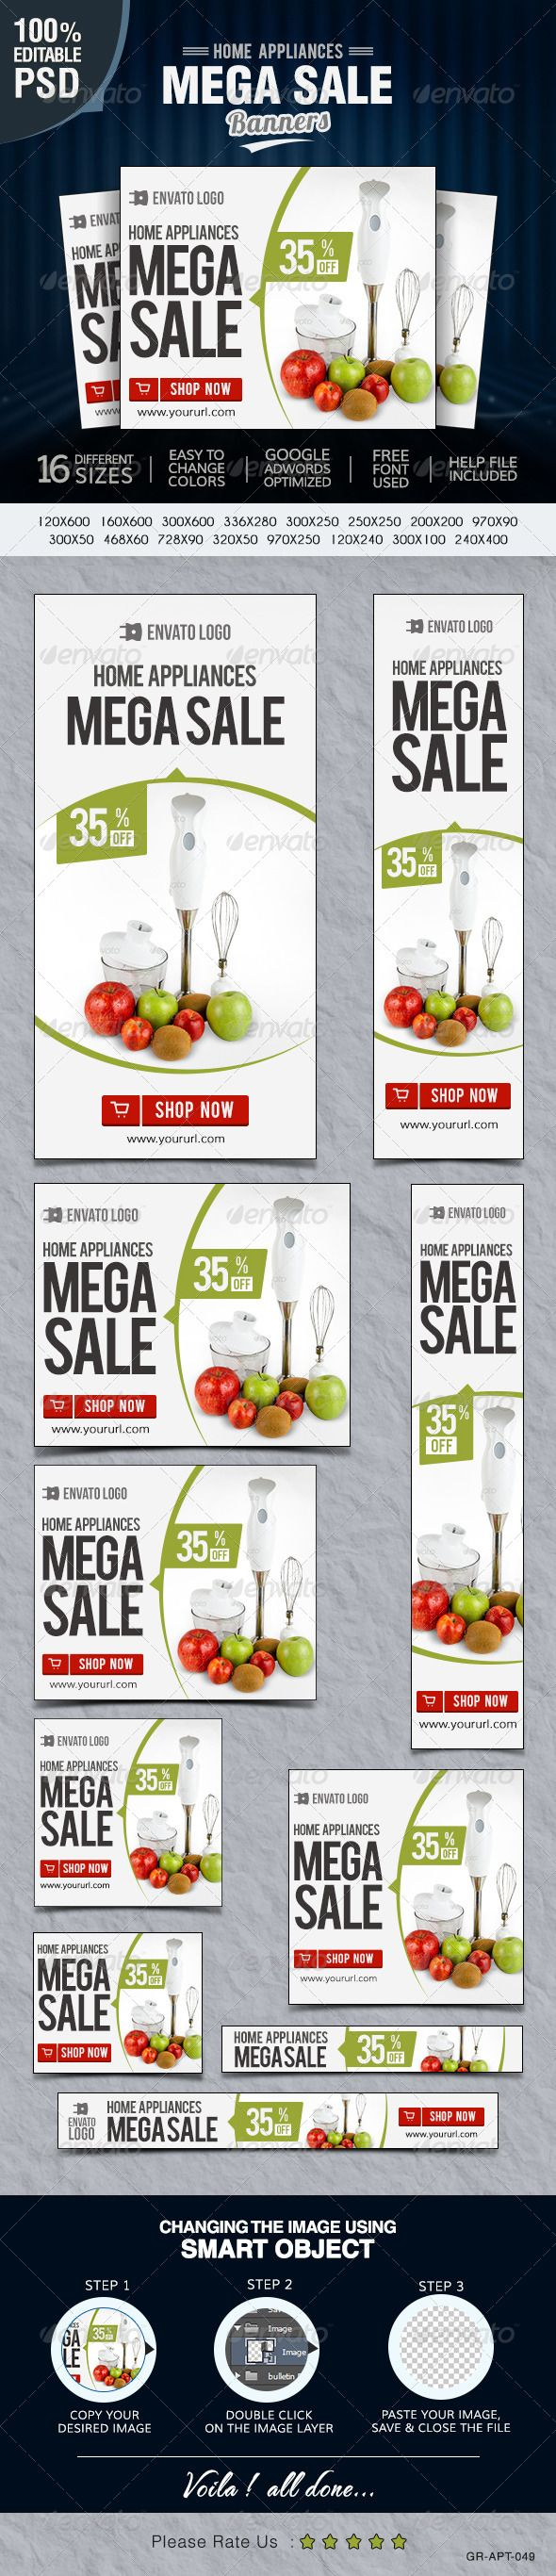 Mega Sale Banners Template PSD | Buy and Download: http://graphicriver.net/item/mega-sale-banners/8153915?WT.ac=category_thumb&WT.z_author=doto&ref=ksioks